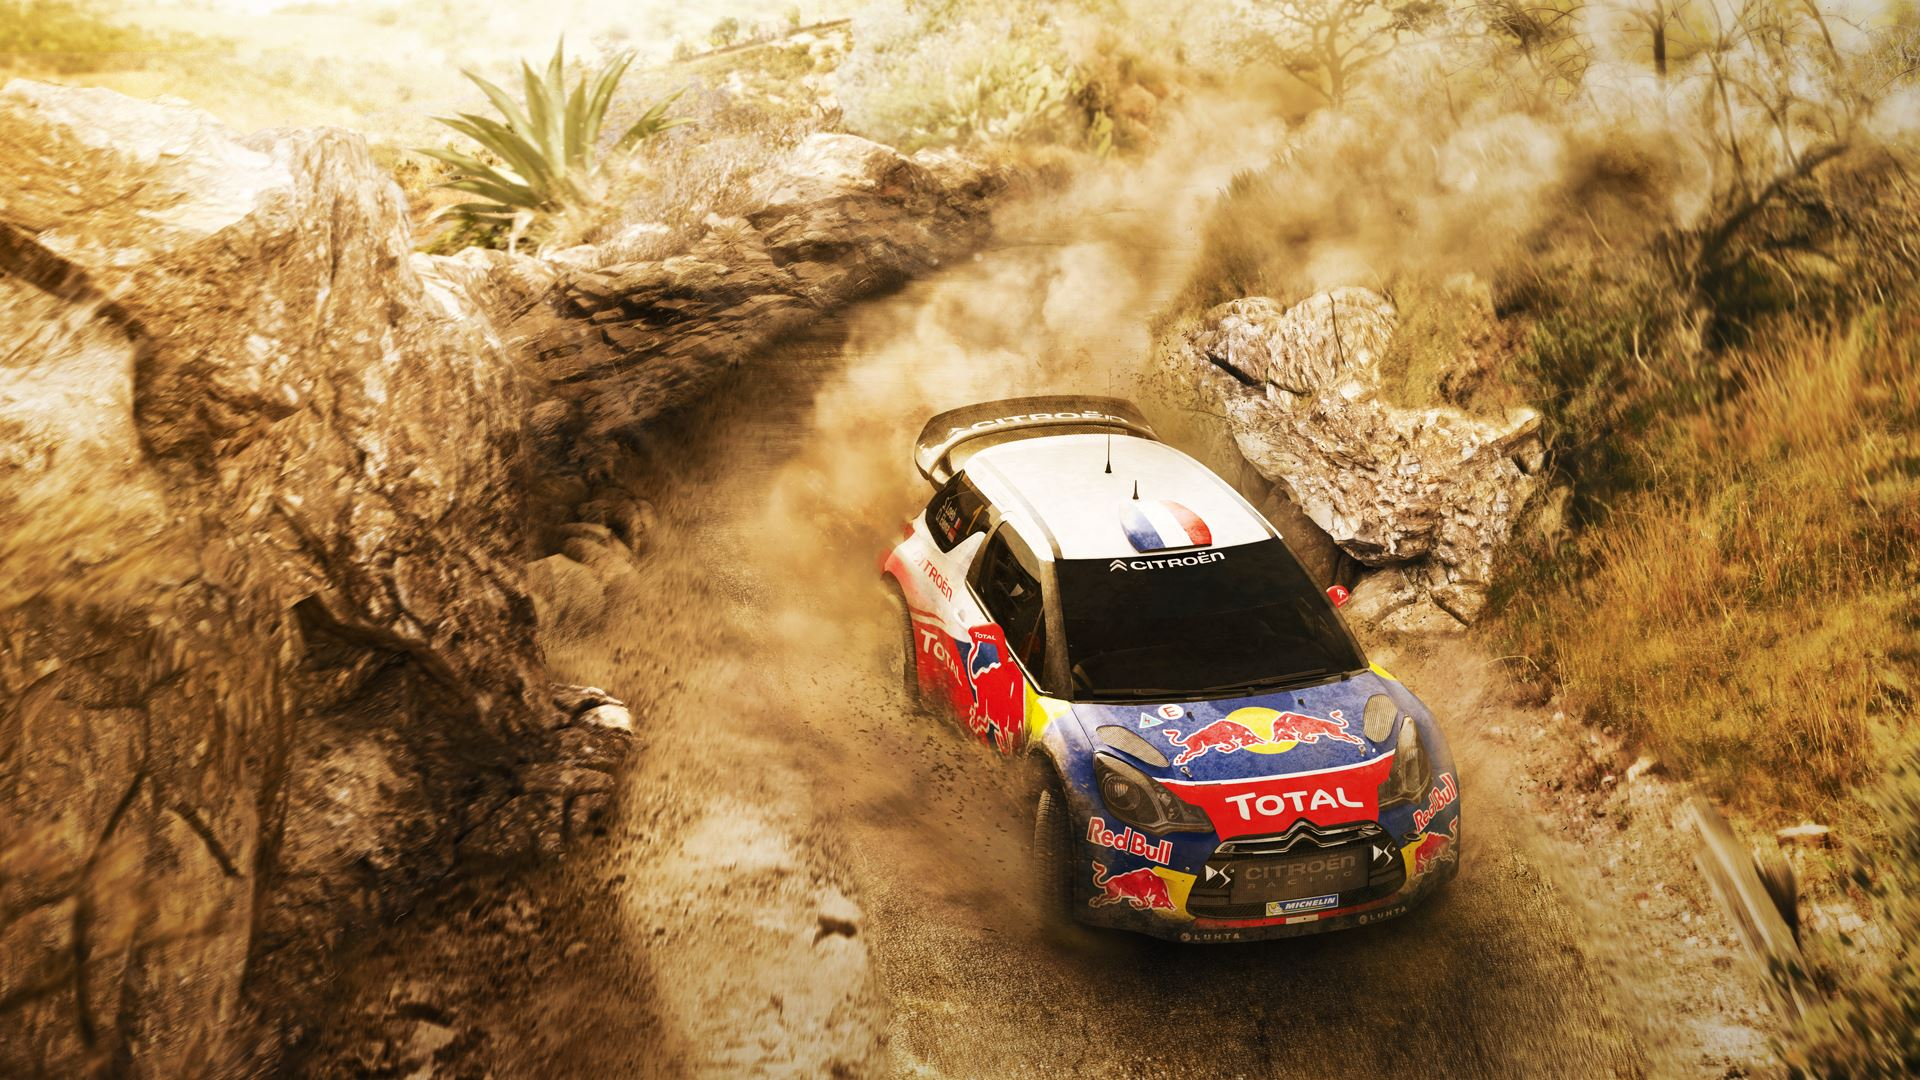 Sebastien Loeb Rally Evo artwork with Citroen DS3 WRC